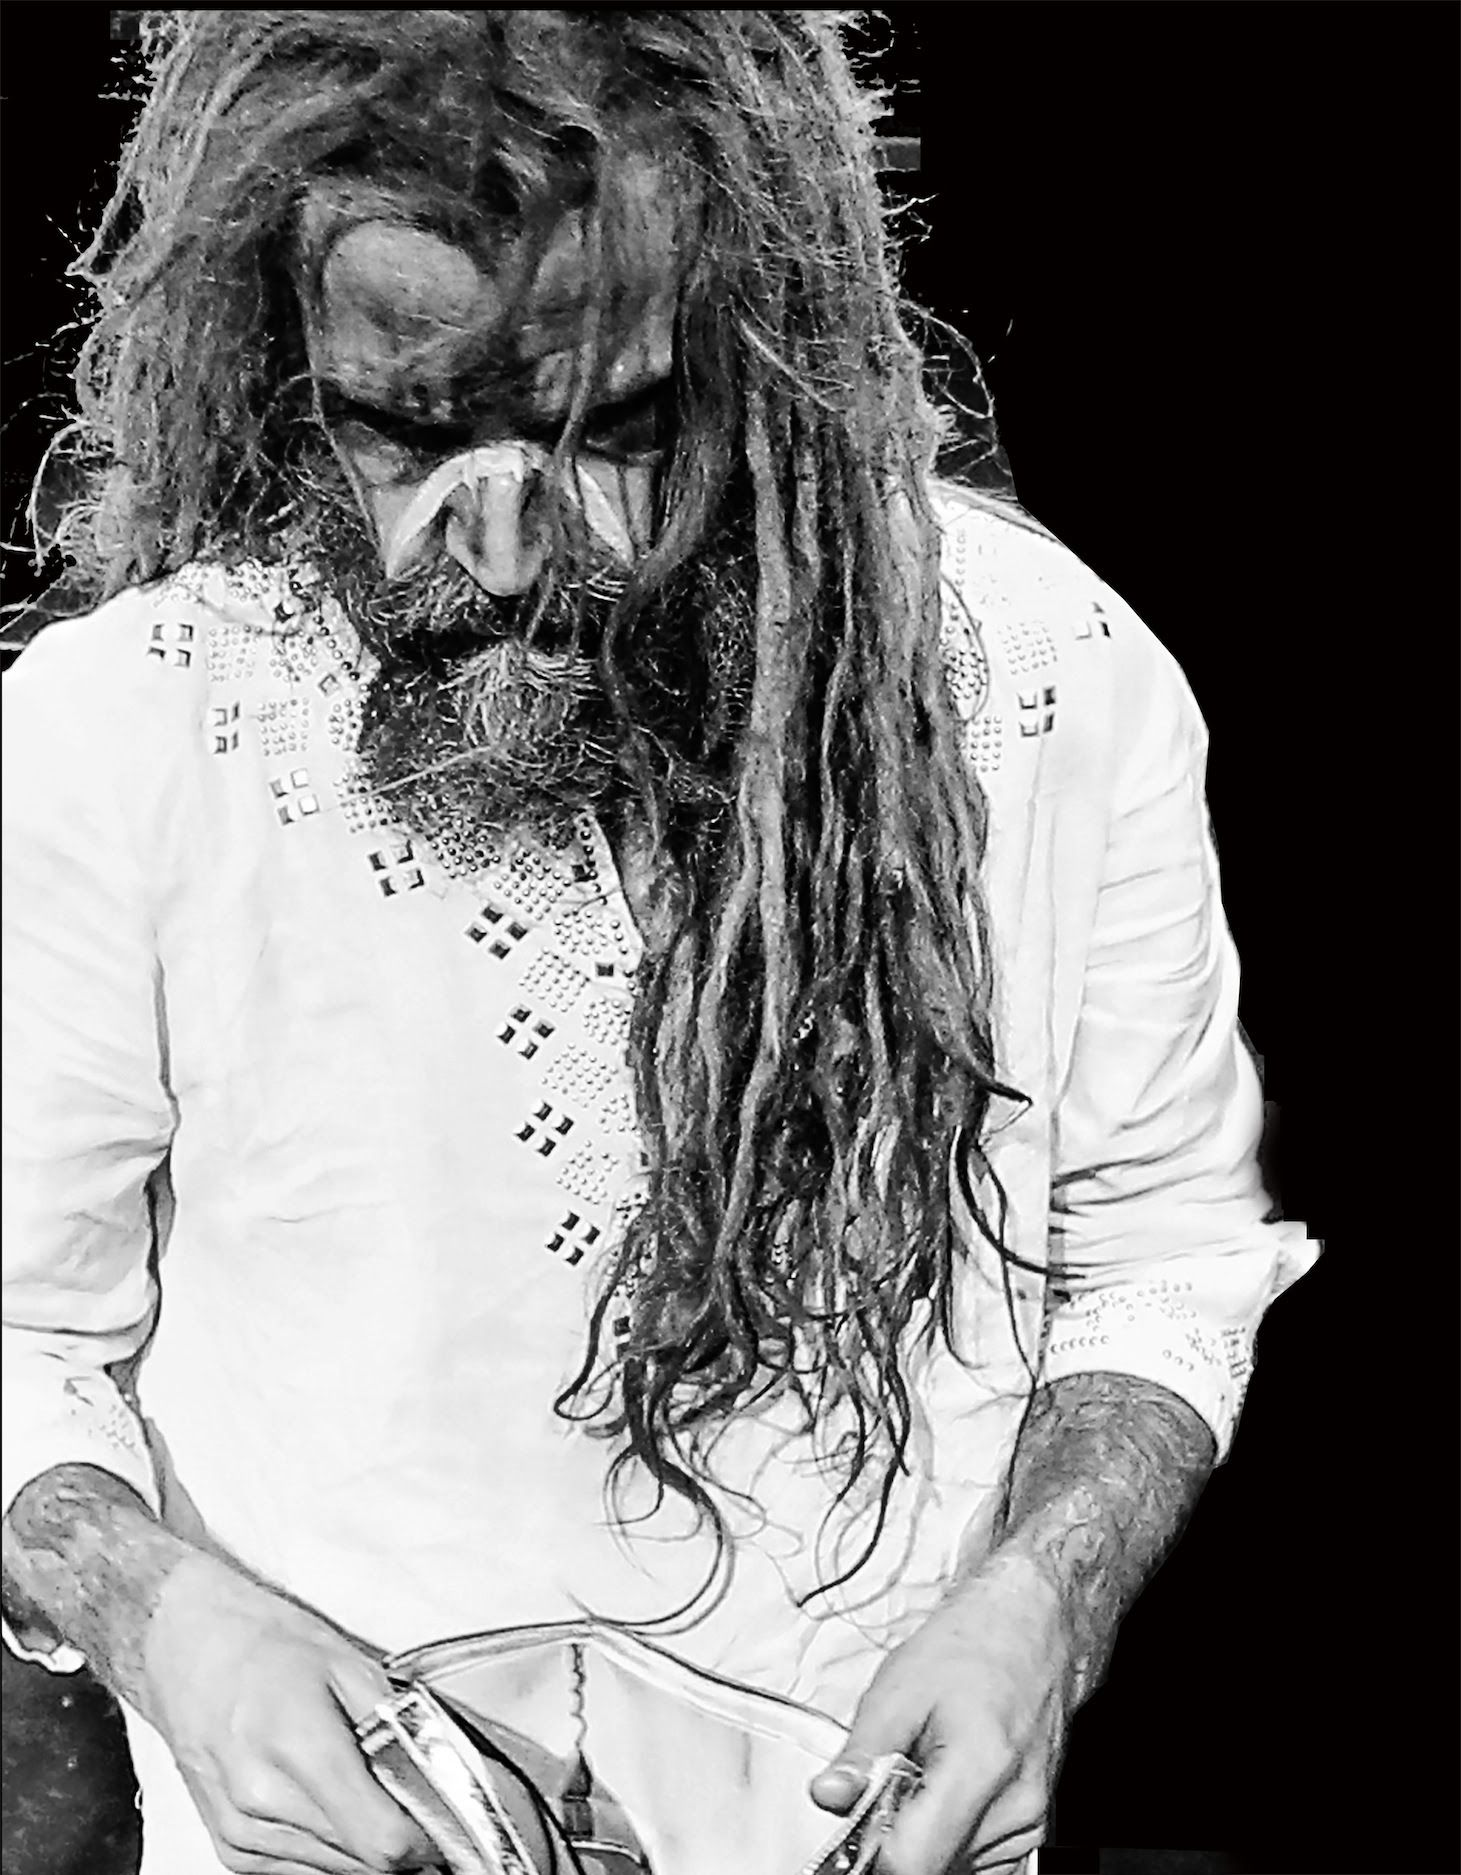 Rob Zombie Announces Co-Headlining Tour With Korn This Summer + New Album Out April 29 – Riverbend Music Center On 8/7